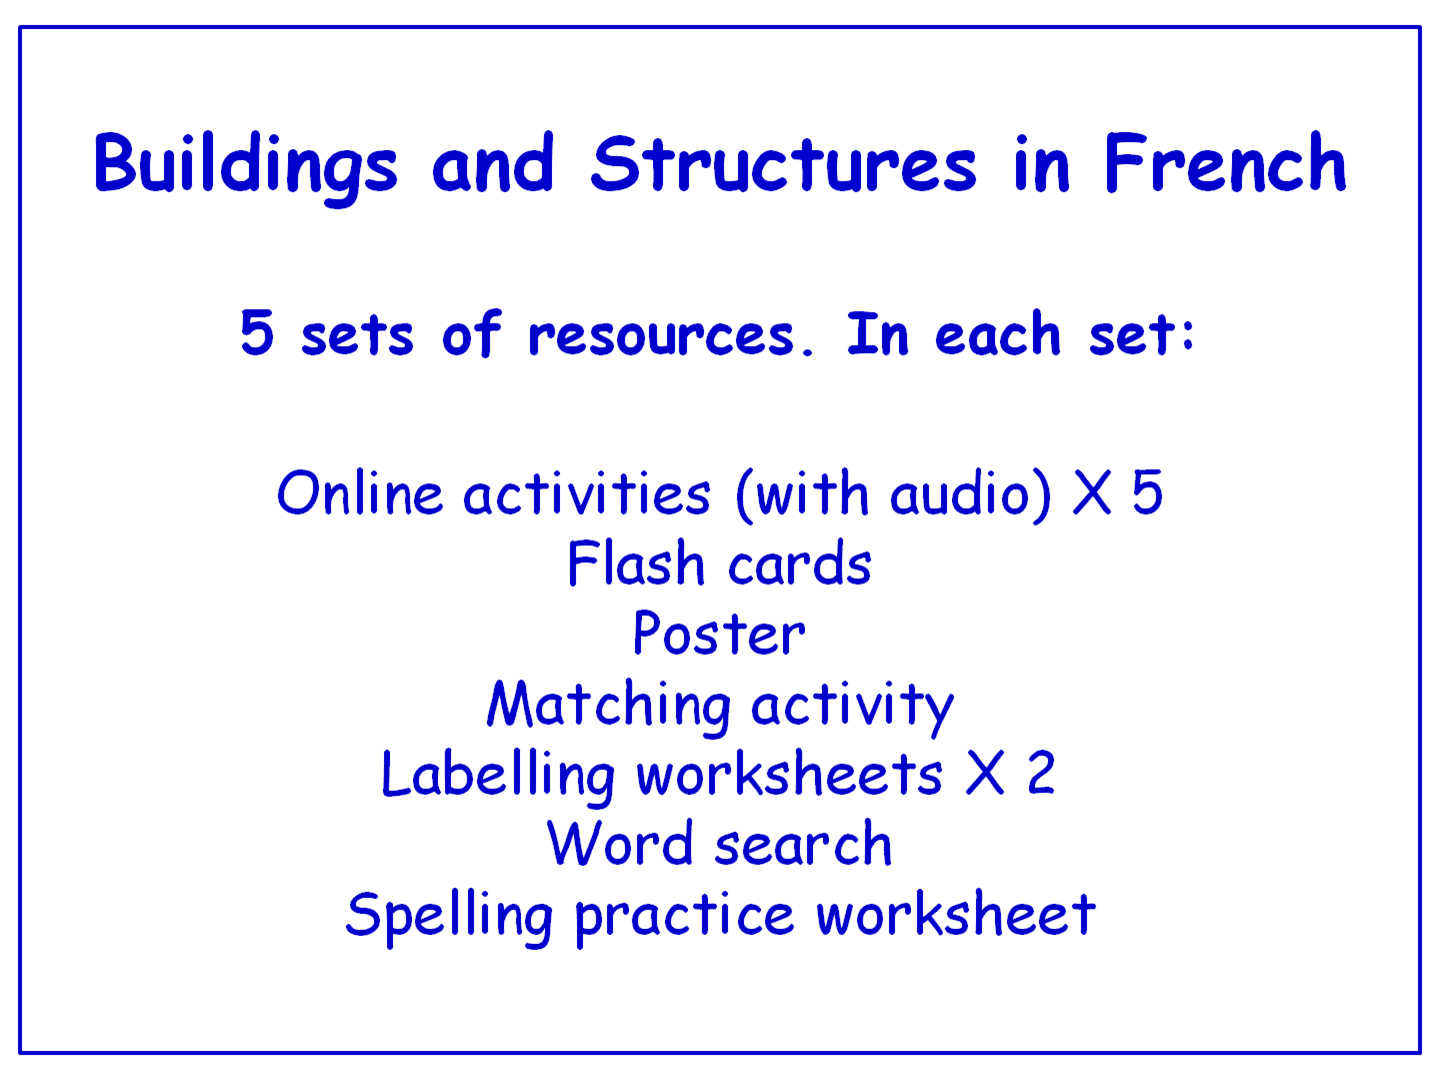 Buildings And Structures In French Worksheets Games Activities And Flash Cards With Audio